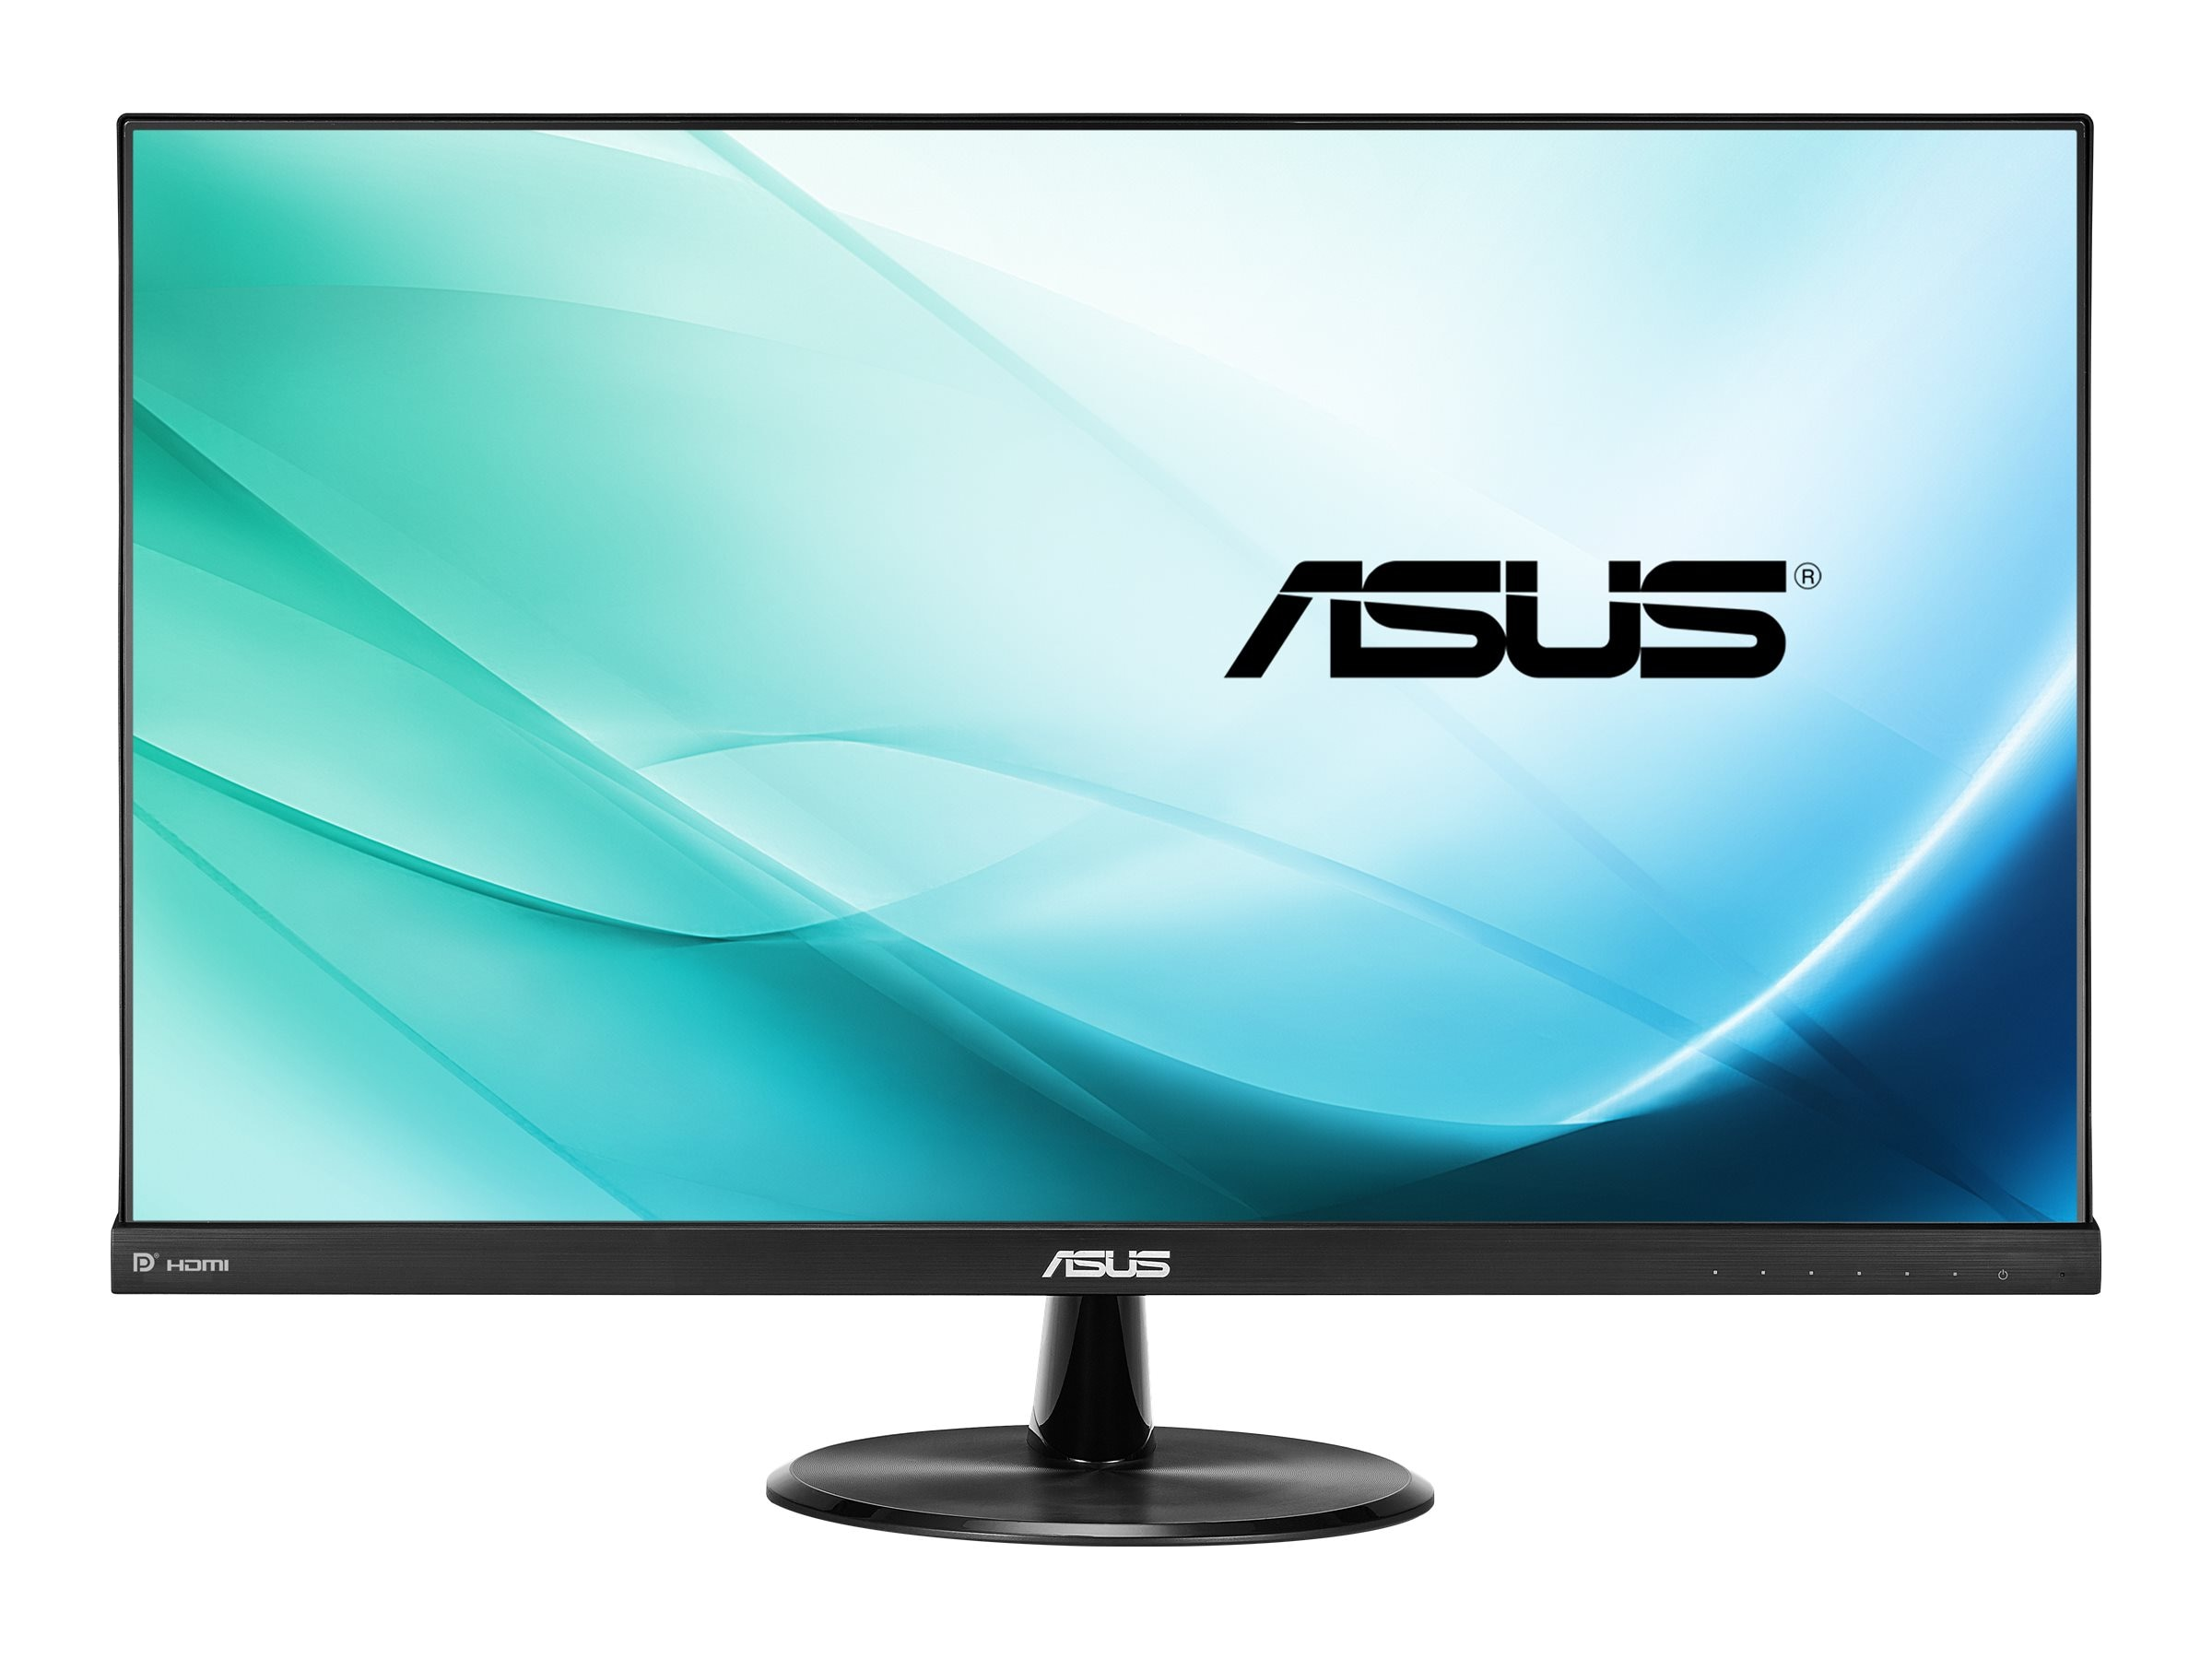 Asus 27 VP279Q-P Full HD LED-LCD Monitor, Black